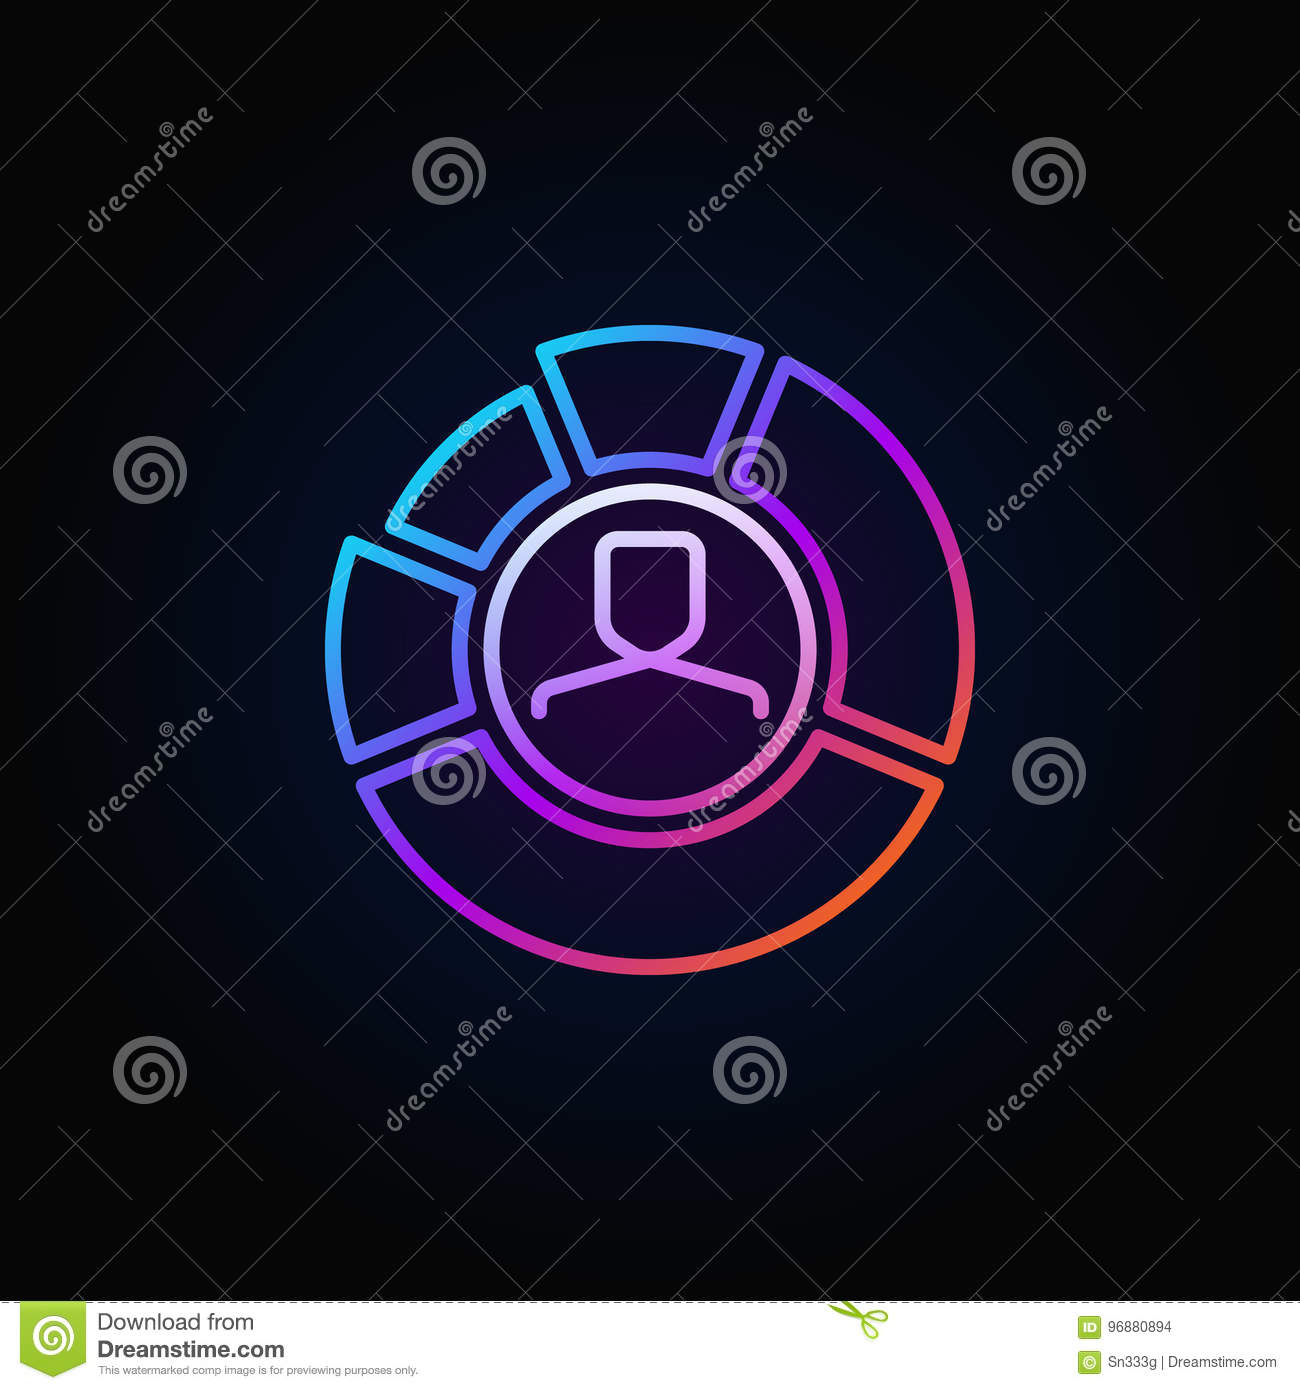 face inside chart colorful icon stock vector illustration offace inside chart colorful icon man in diagram business vector sign or logo element in thin line style dark background